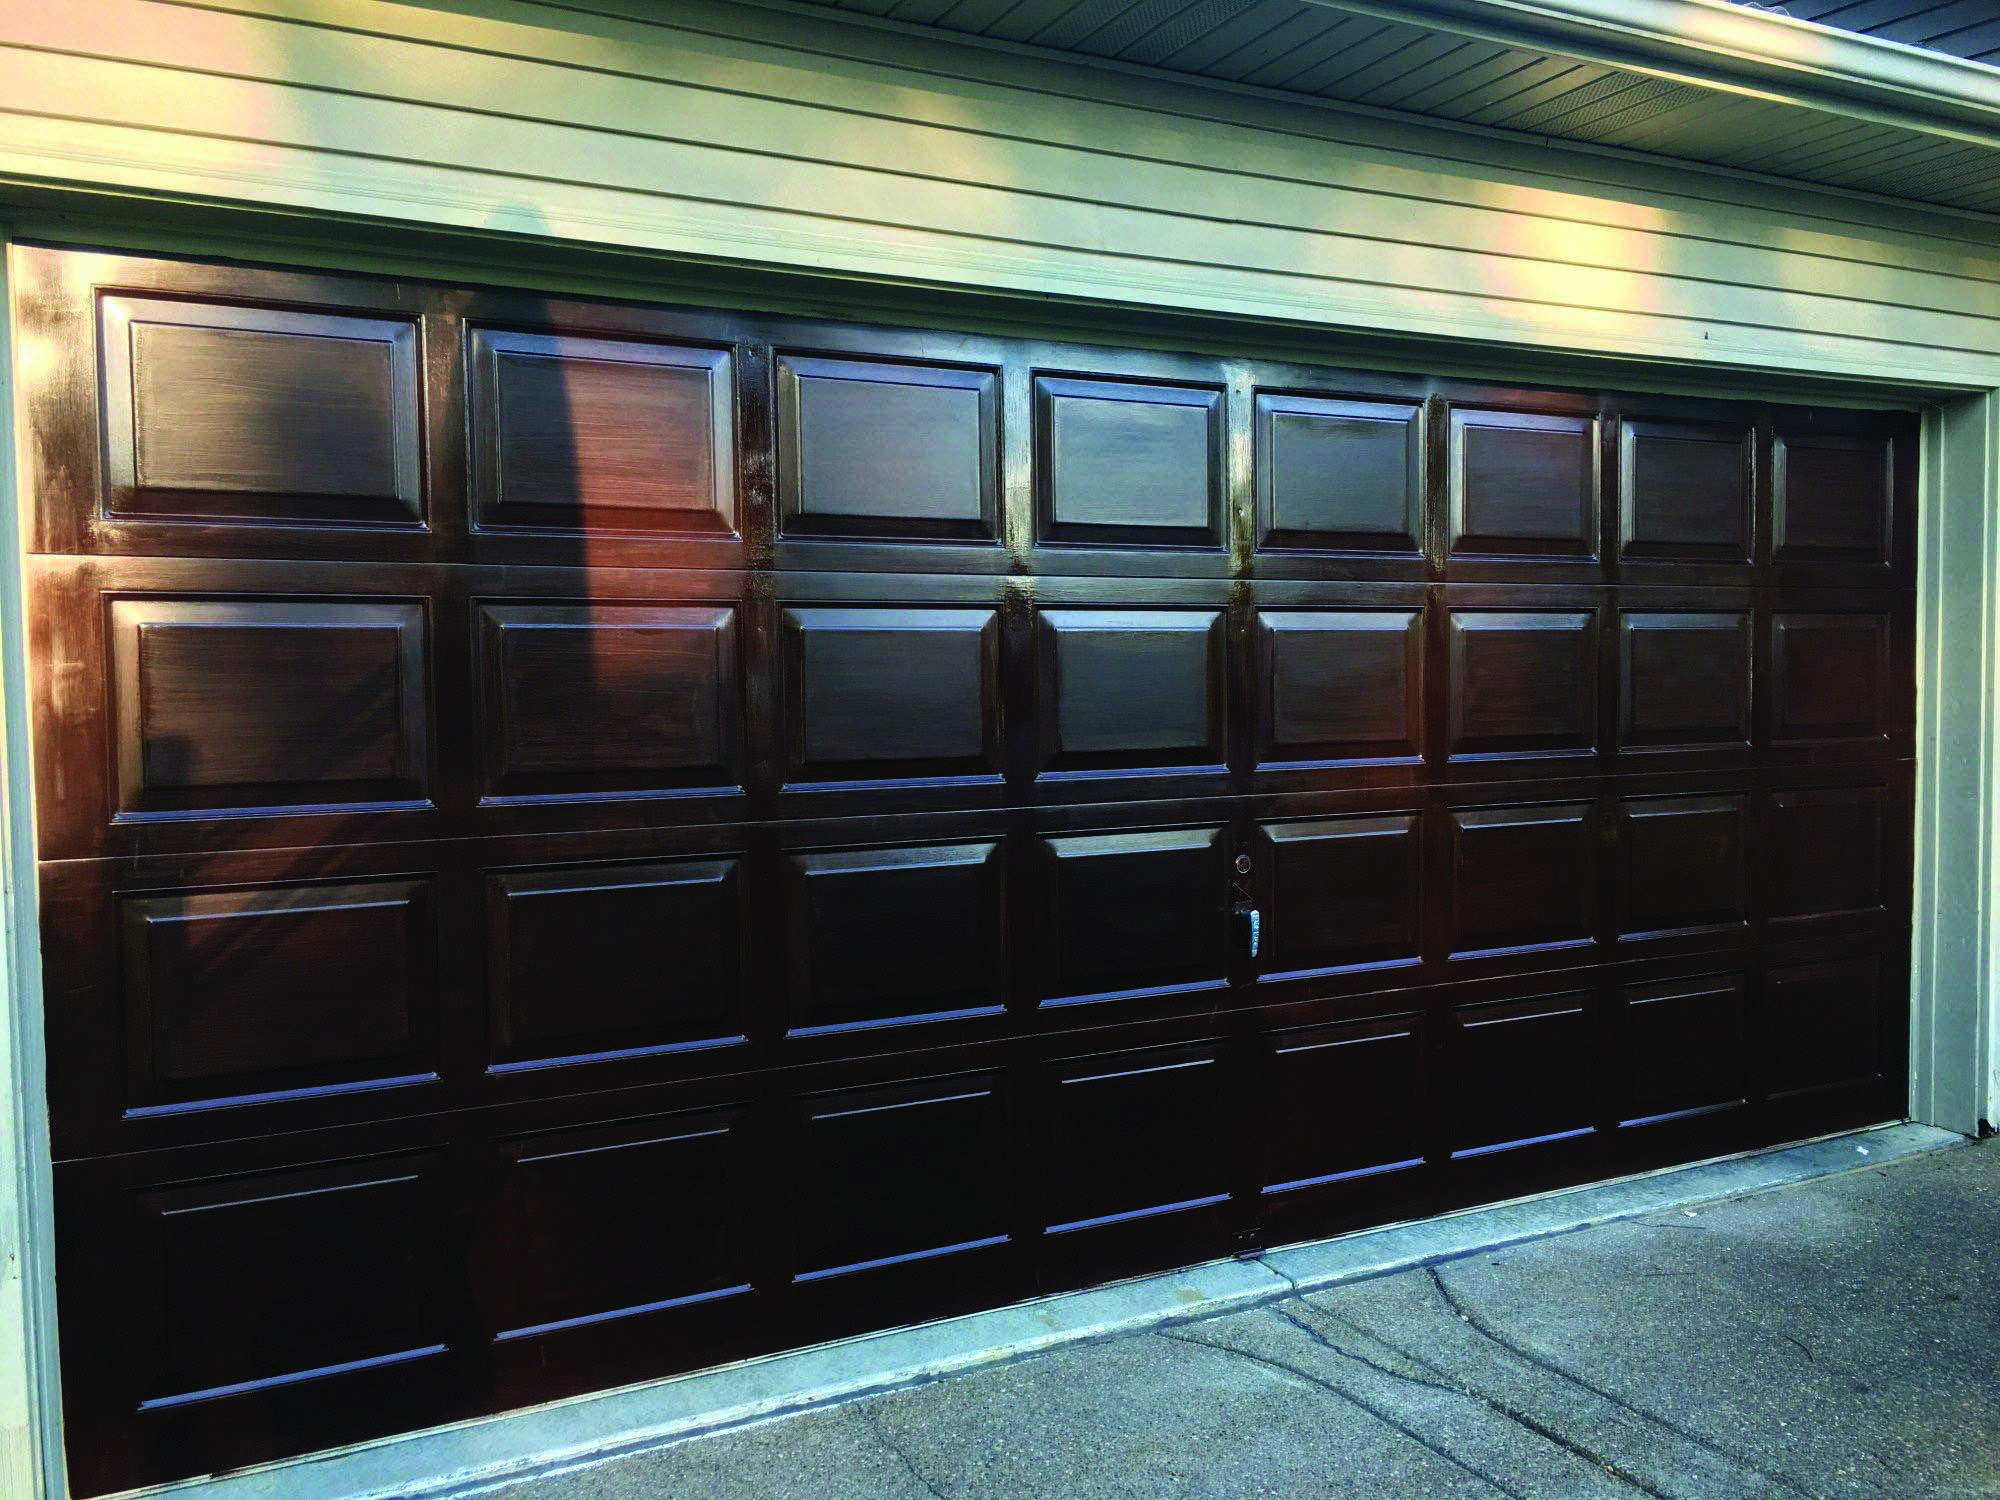 Beautiful Barn Garage Doors Pay A Visit To Our Guide For A Lot More Good Ideas Barngaragedoors Garage Doors Glass Garage Door Contemporary Garage Doors